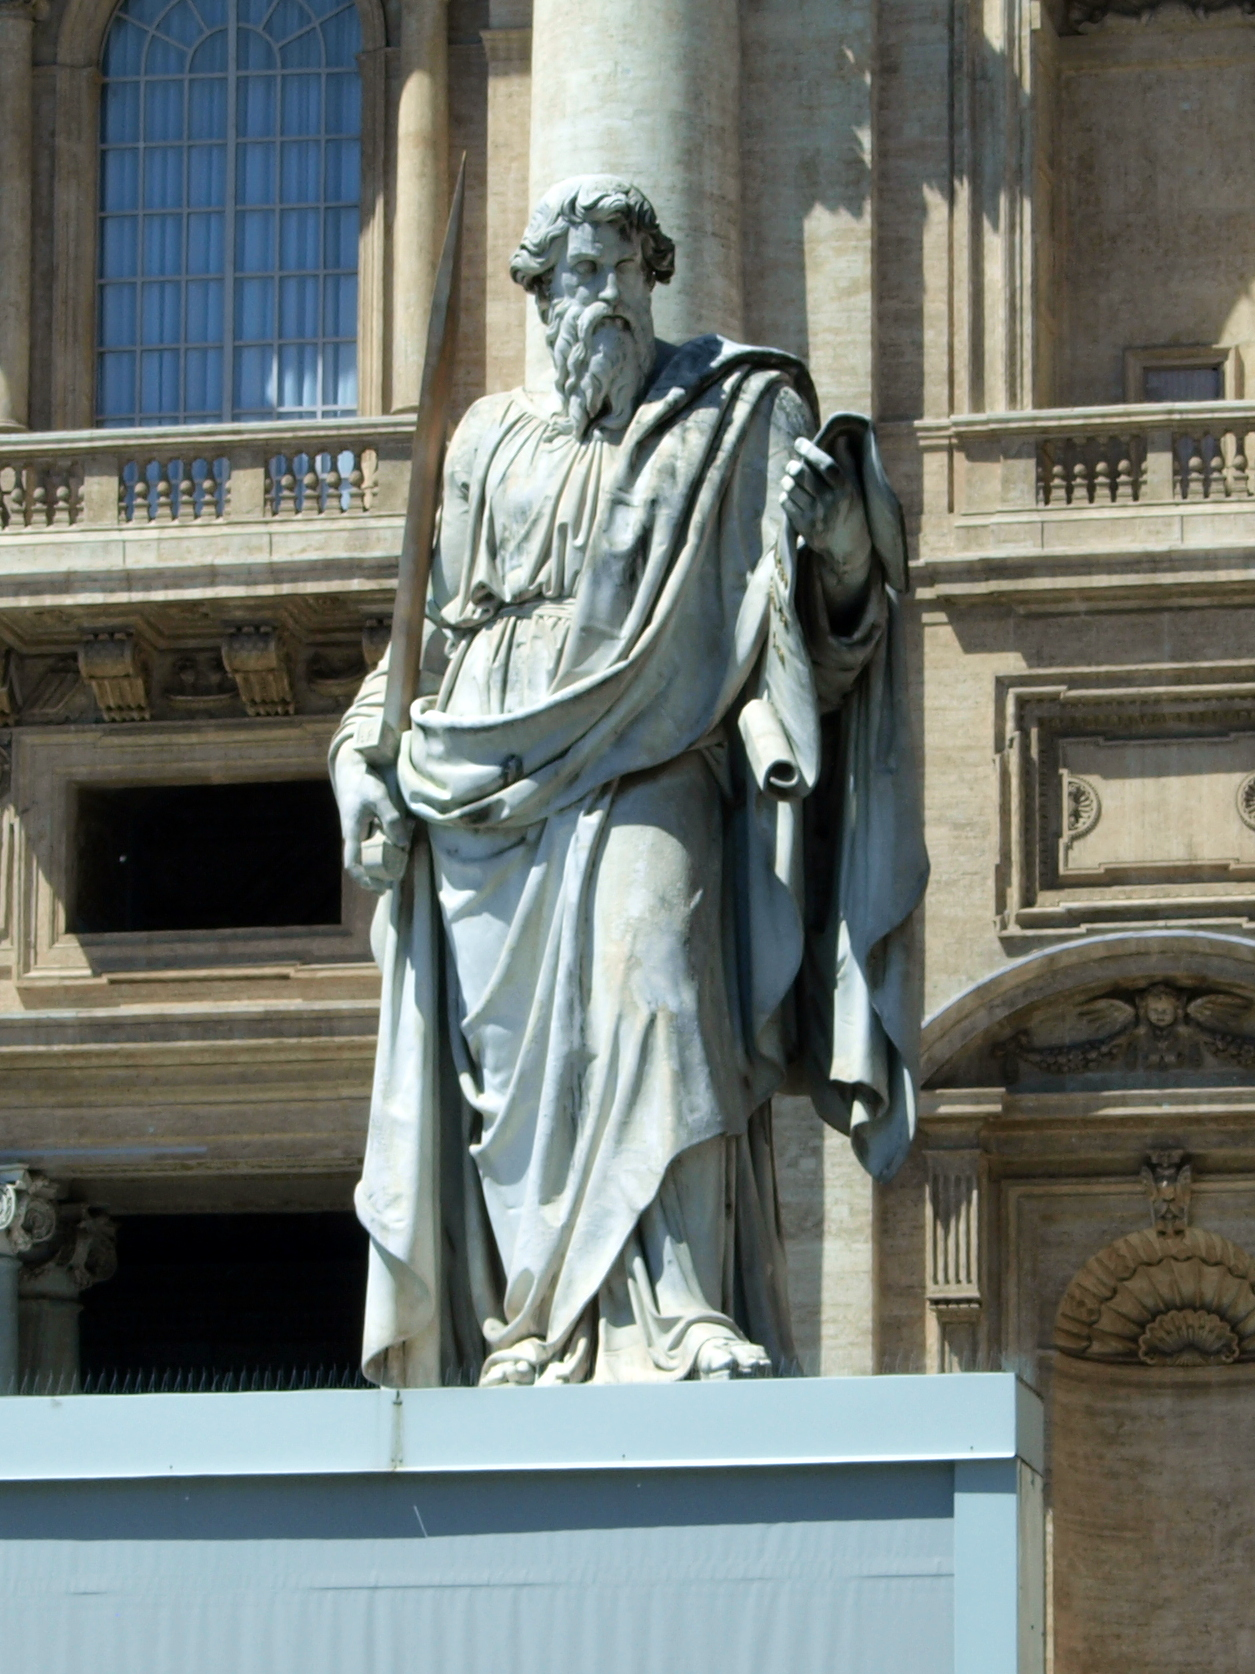 https://upload.wikimedia.org/wikipedia/commons/8/81/St._Paul%27s_statue_in_front_of_the_St._Peter%27s_basilica.JPG